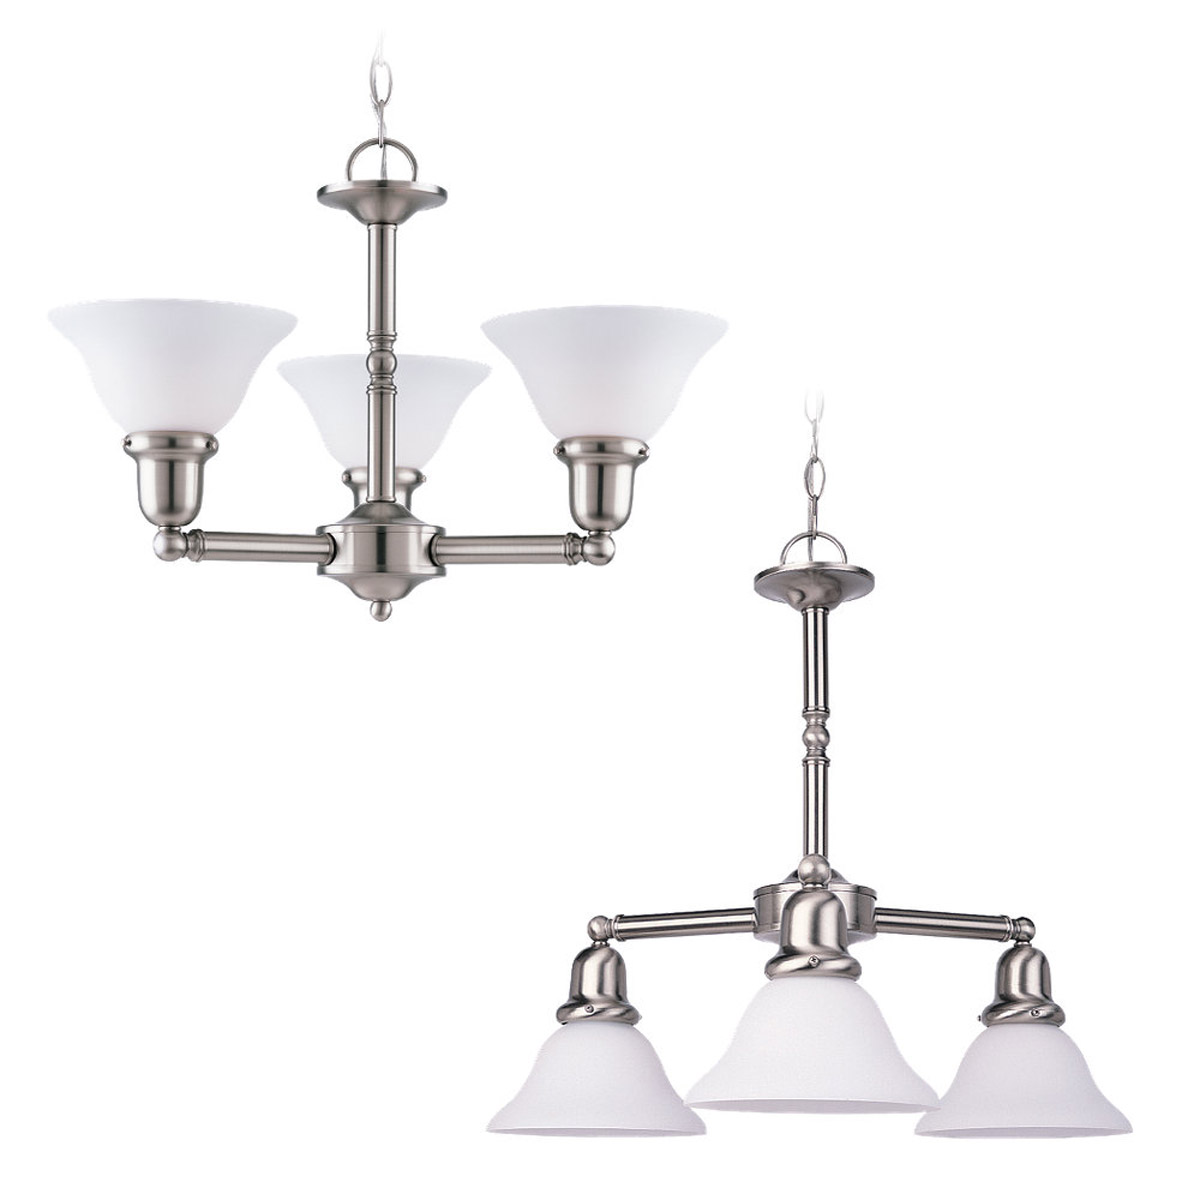 Sea Gull Lighting Sussex 3 Light Chandelier in Brushed Nickel 31060-962